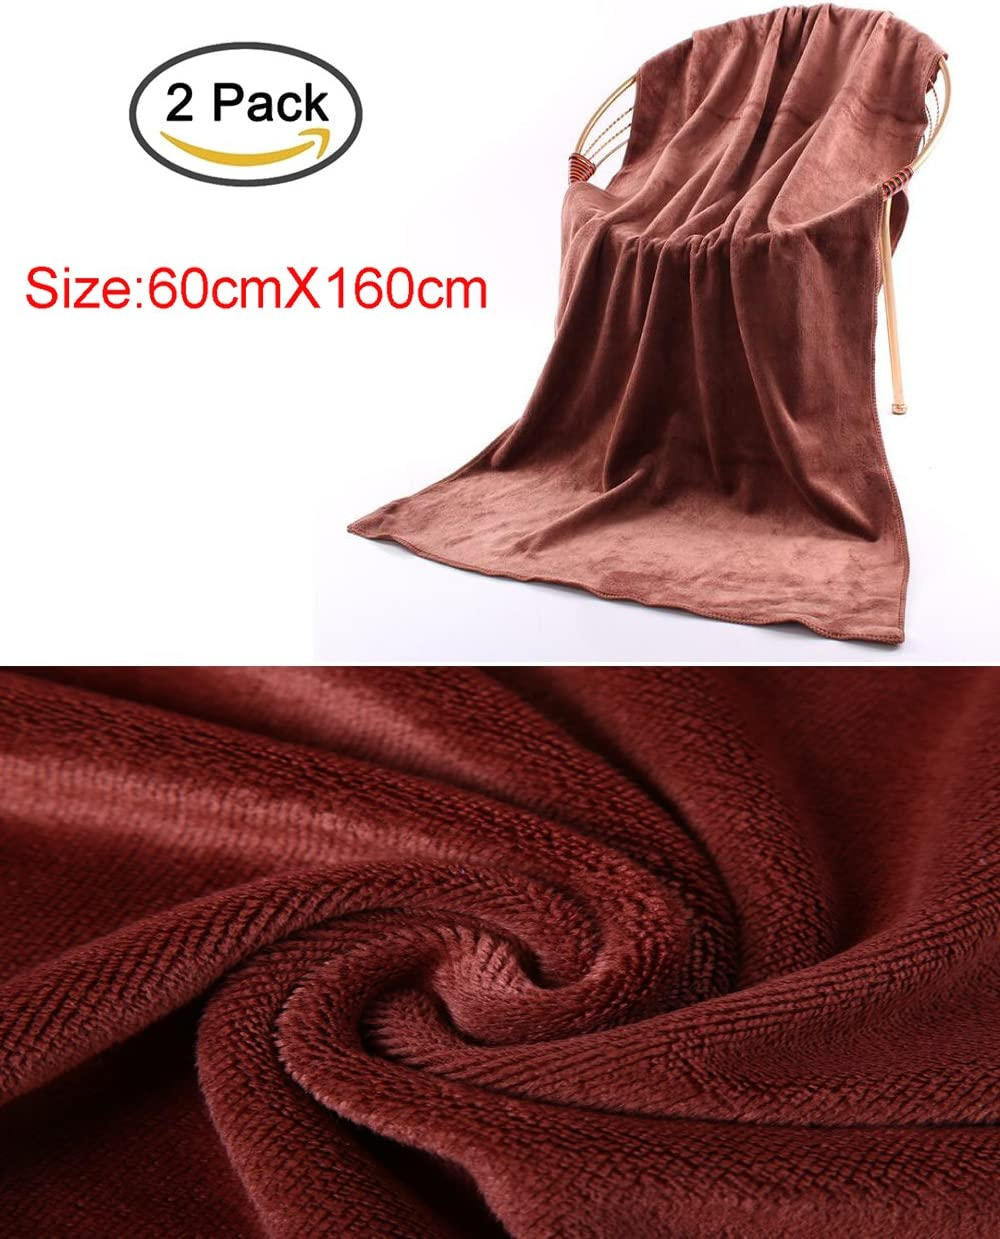 Coffee Pack of 2 Microfiber Car Wash Drying Towels Beauty Care 60 x 160cm 23.62 x 62.99 inches Kitchen Clean Enterest Washing towel Nano-super fiber towel for Car Wash Car Wax